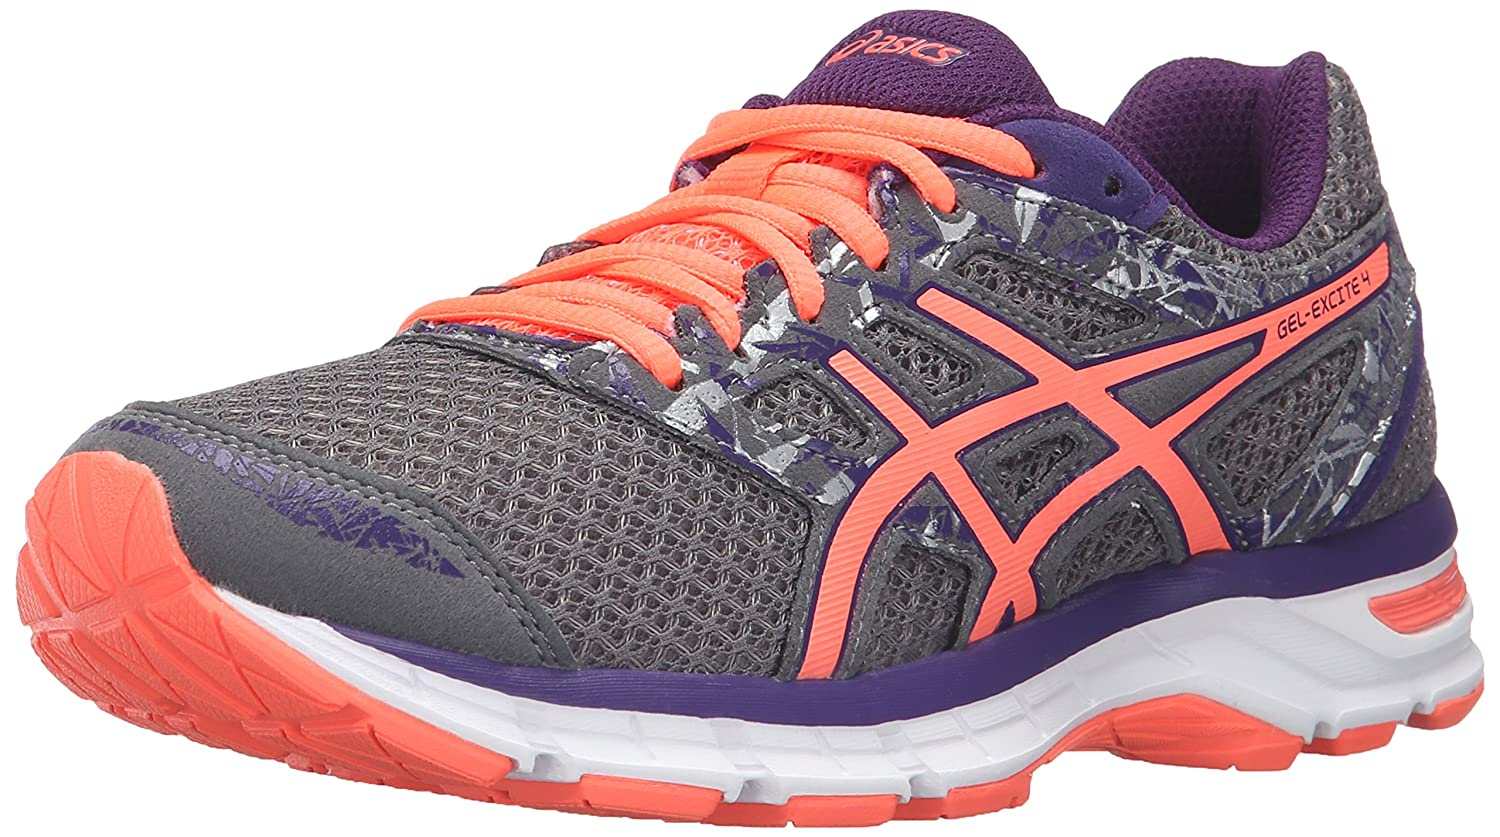 Shark Flash Coral Parachute Purple ASICS Women's Gel-Excite 4 Running shoes